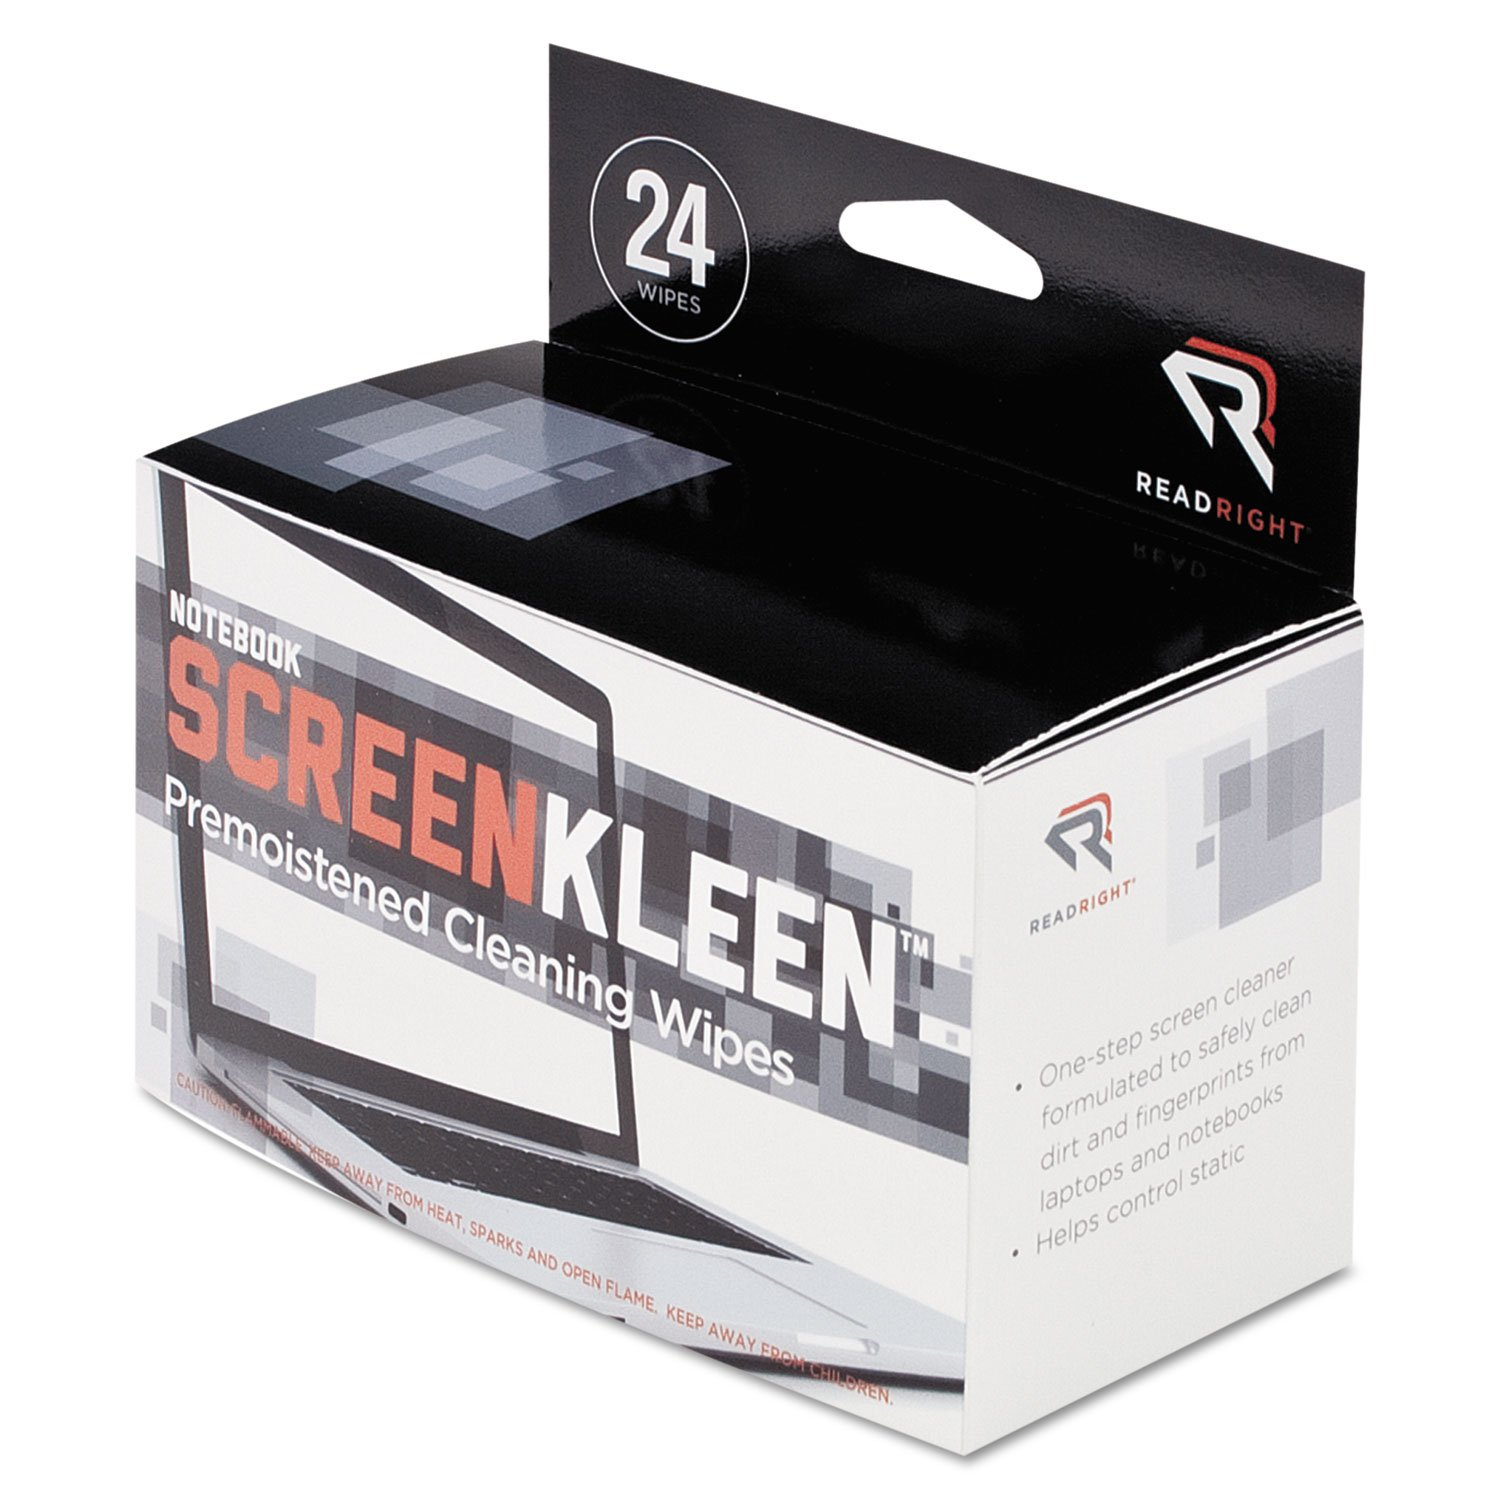 Read Right RR1217 Notebook ScreenKleen Pads, Cloth, 7 x 5, White, 24/Box by Read Right